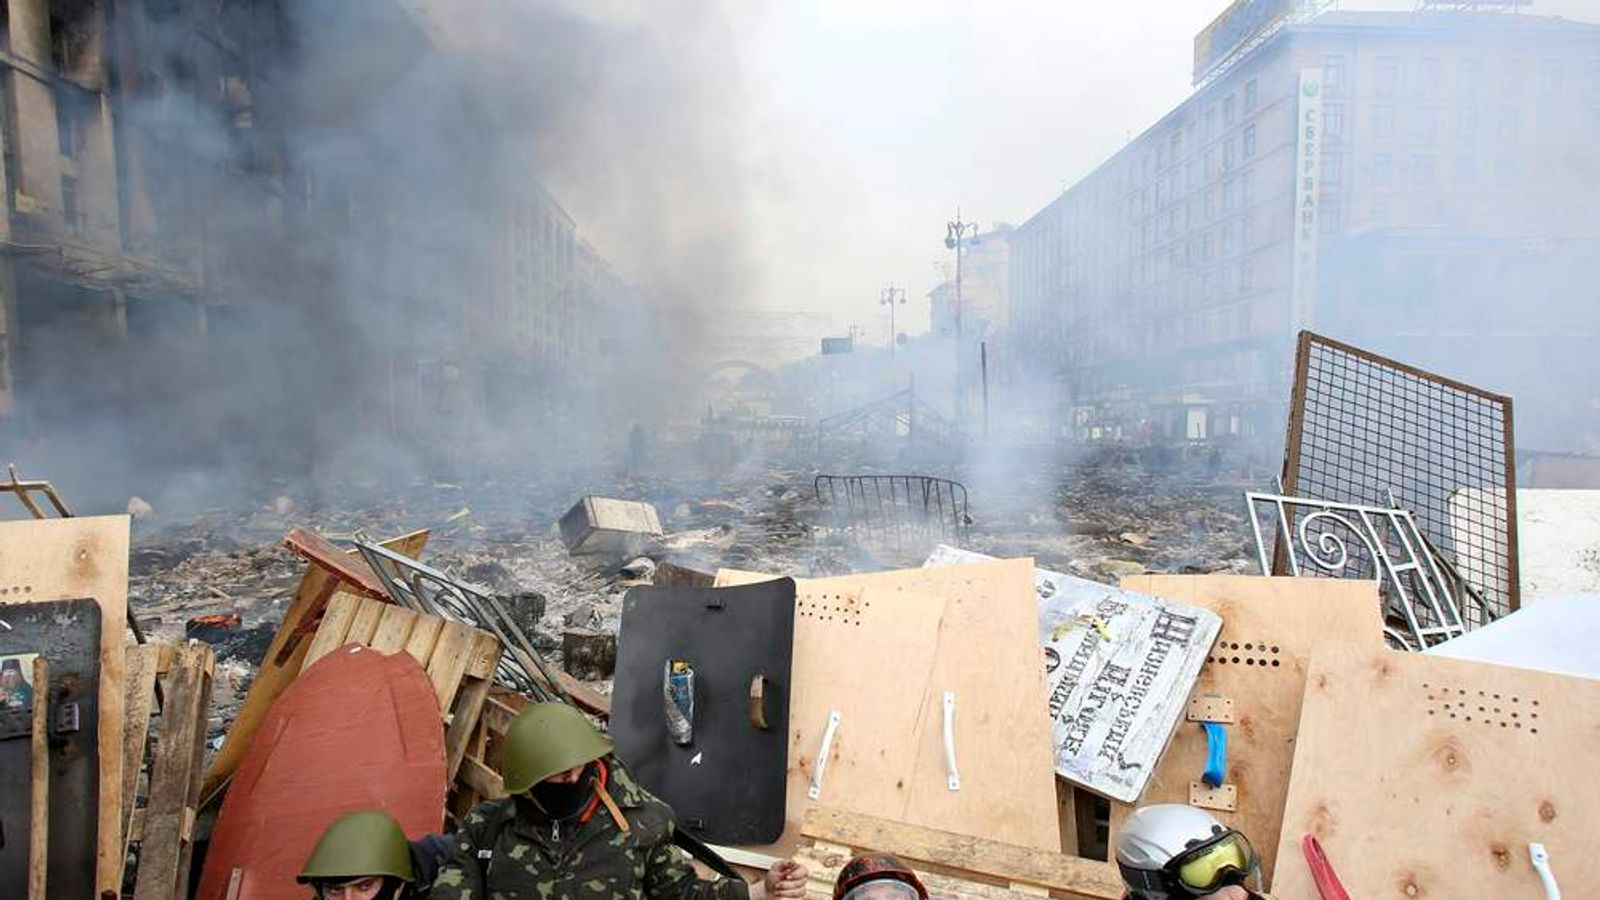 Anti-government protesters rest at a barricade near the site of clashes with Interior Ministry members and riot police in Kiev.